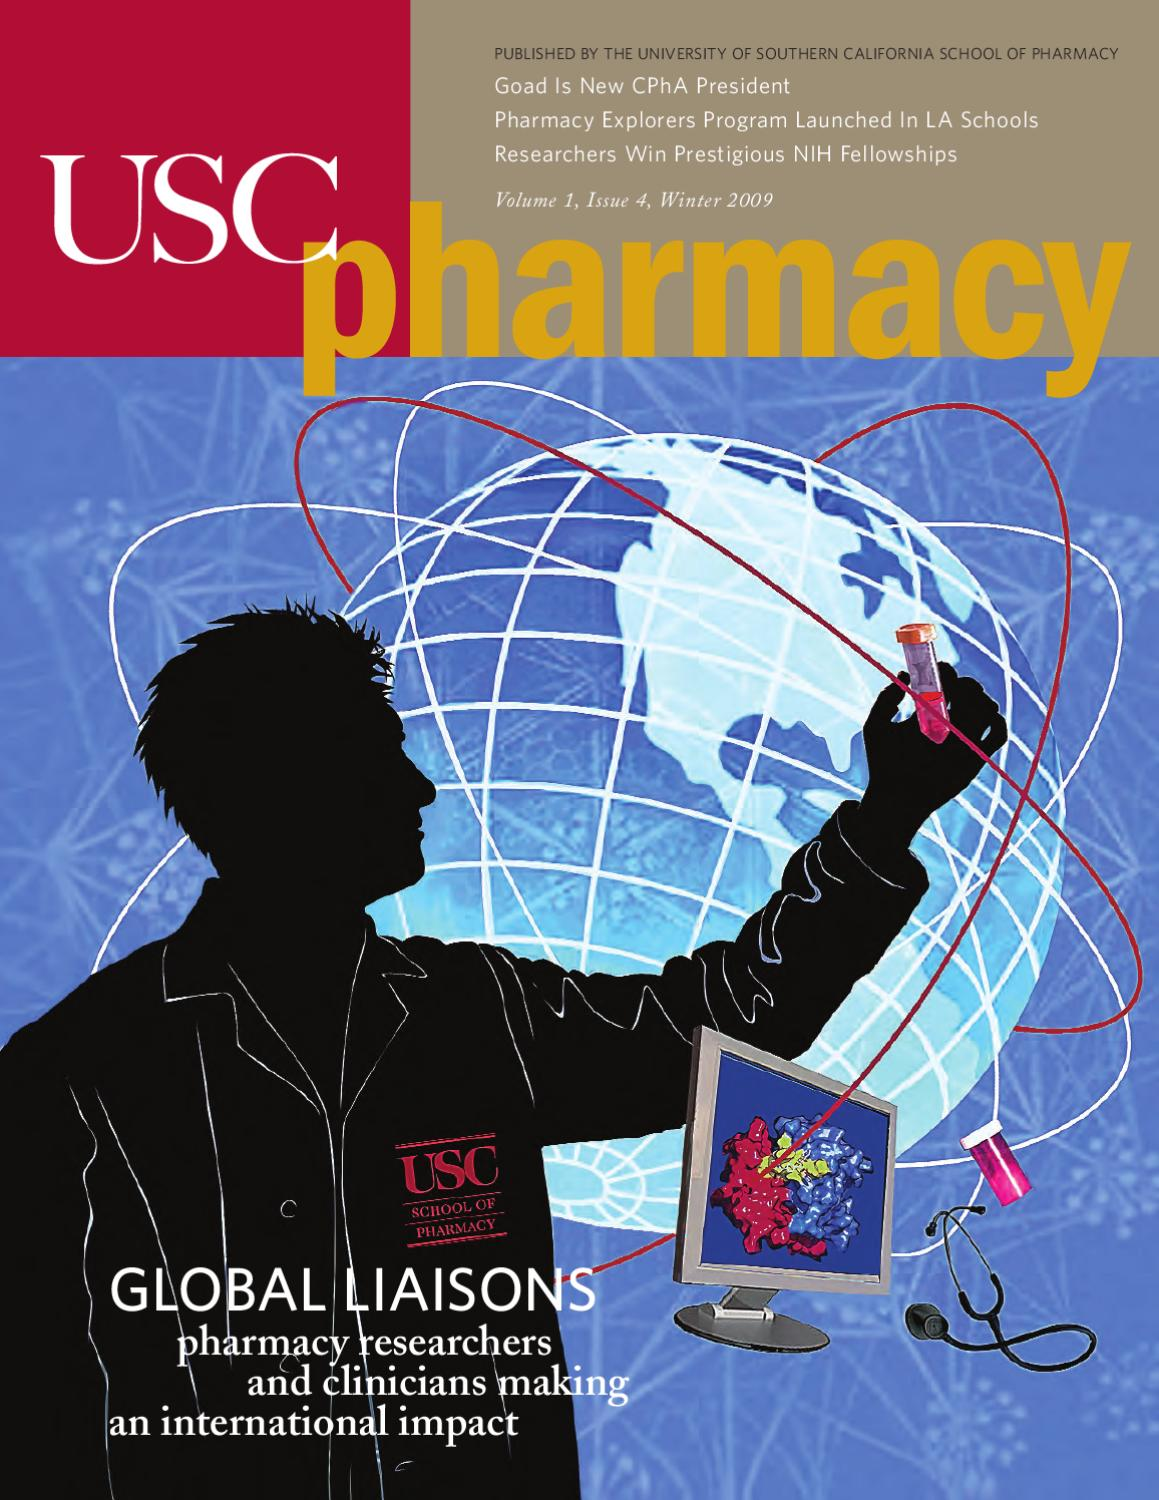 Healthcare alliance rxrelief - Usc Pharmacy Magazine Winter 2009 By University Of Southern California Issuu